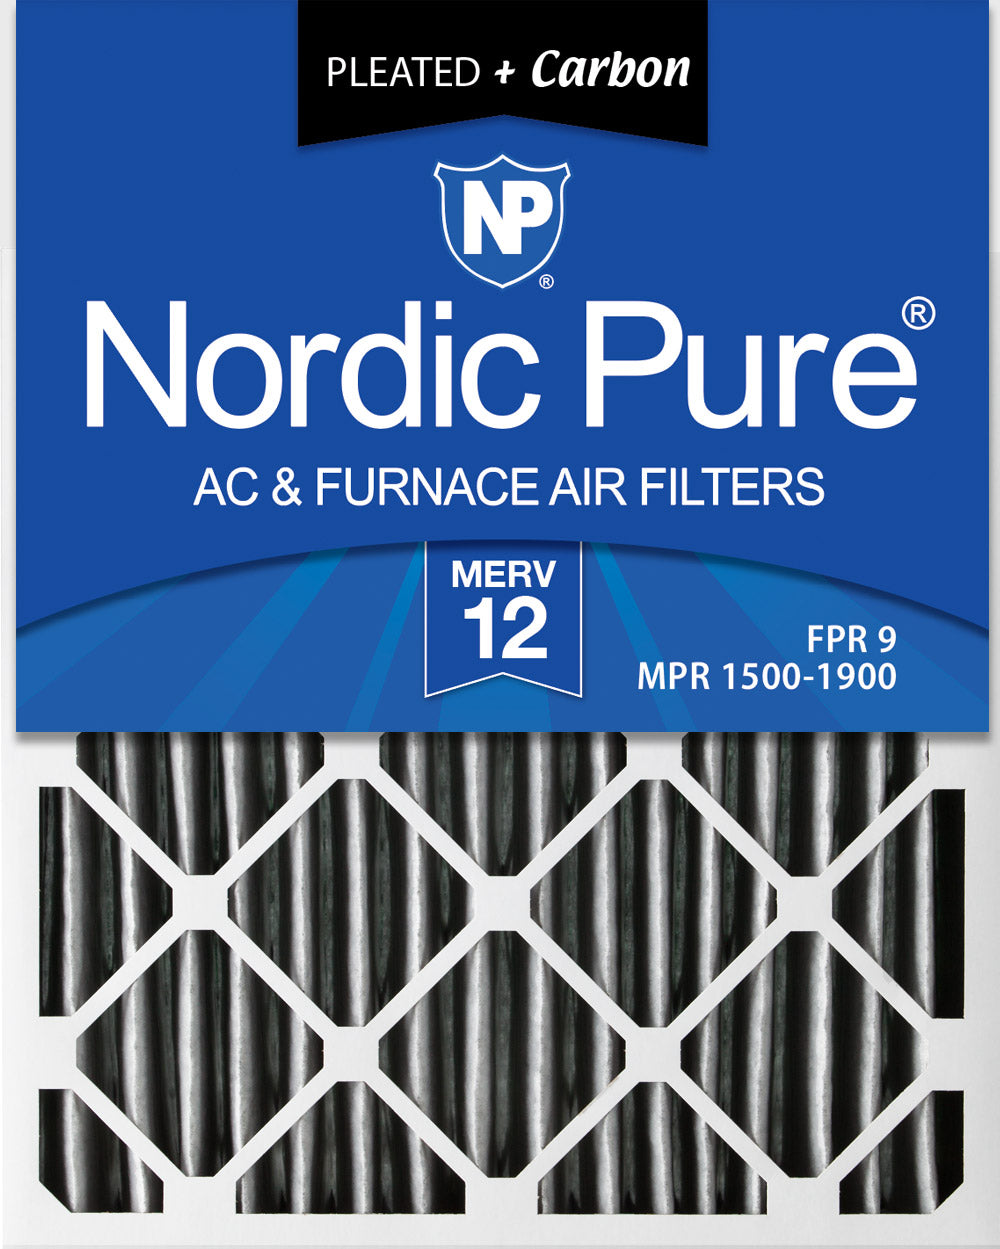 Nordic Pure 24x30x2 MERV 13 Plus Carbon Pleated AC Furnace Air Filters 3 Pack